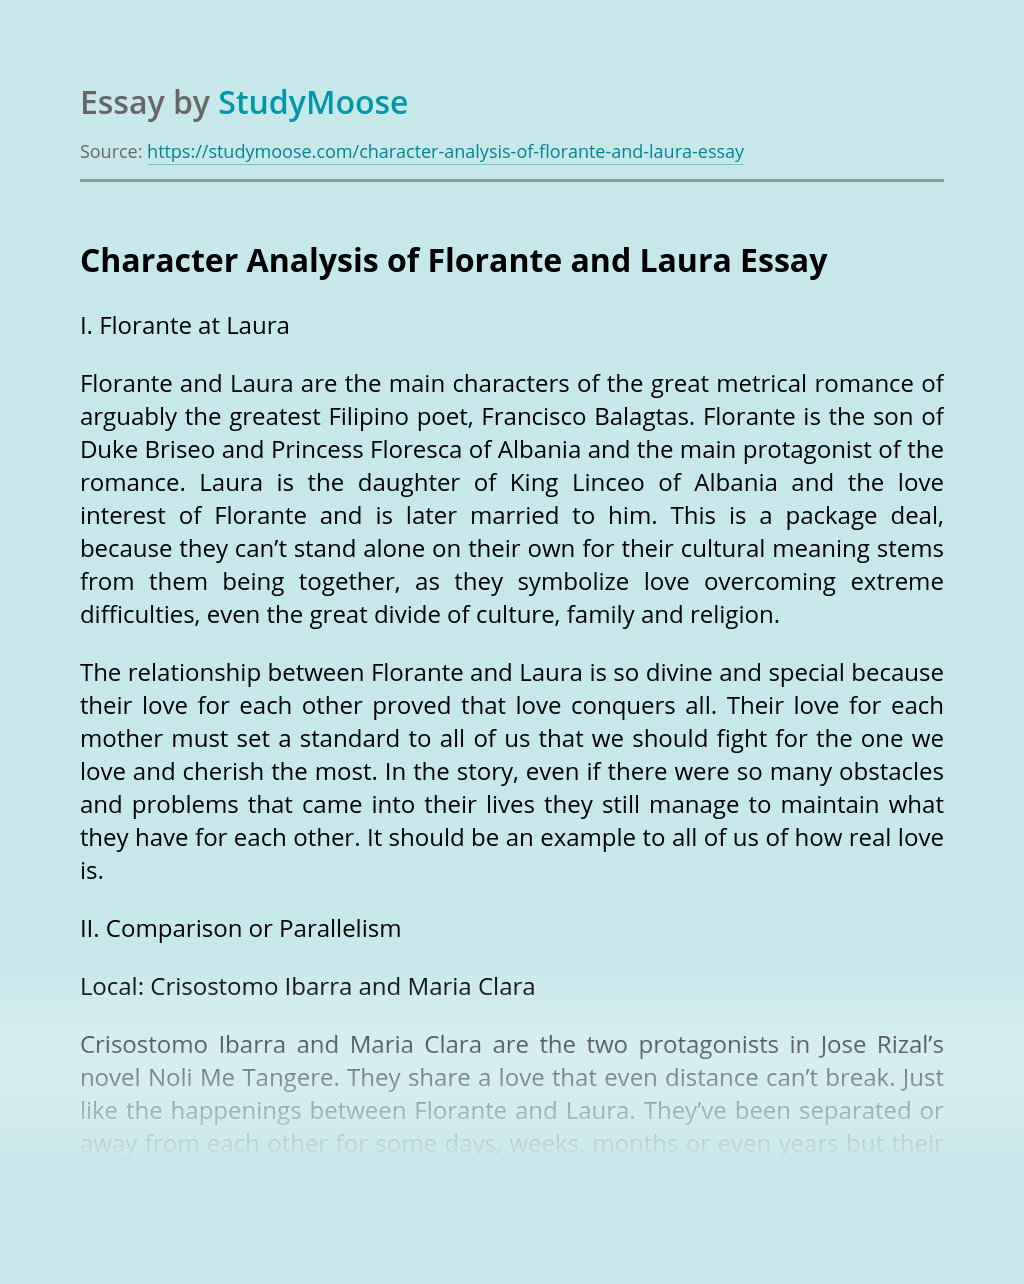 Character Analysis of Florante and Laura